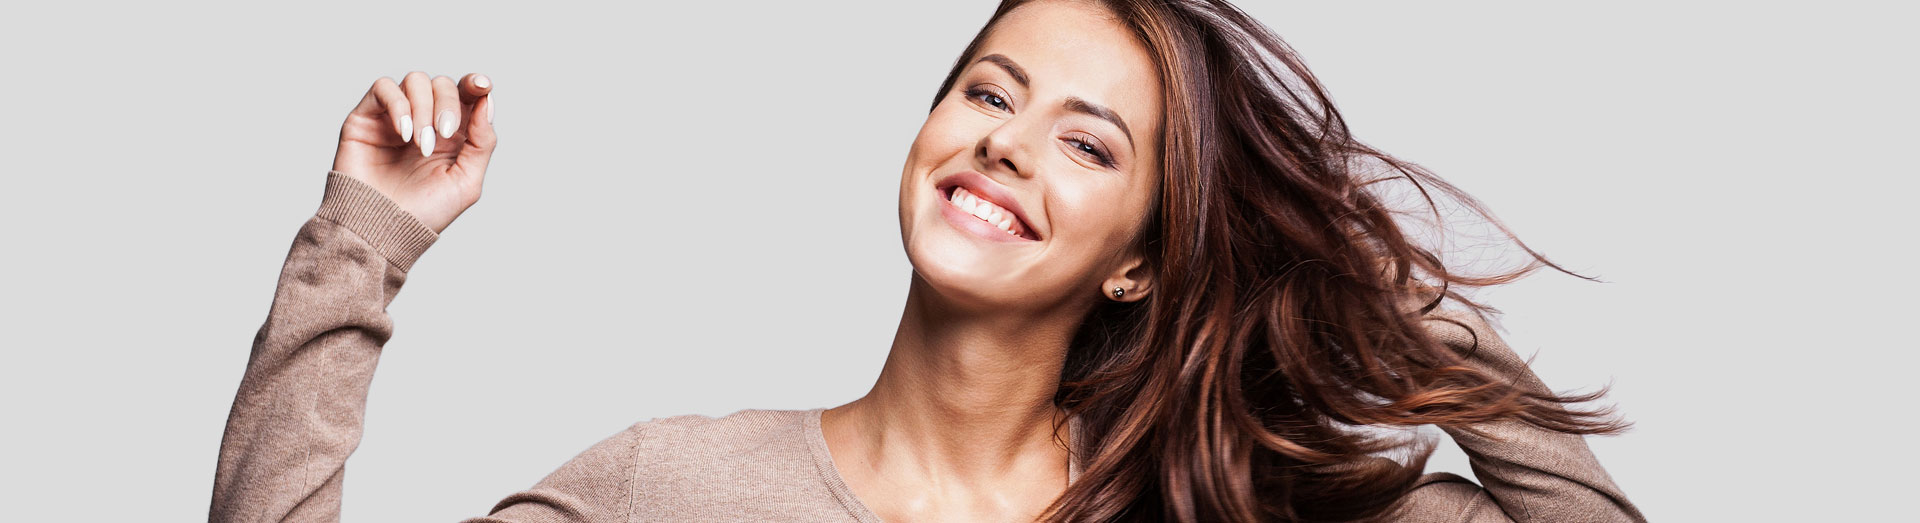 Attractive woman with beautiful smile